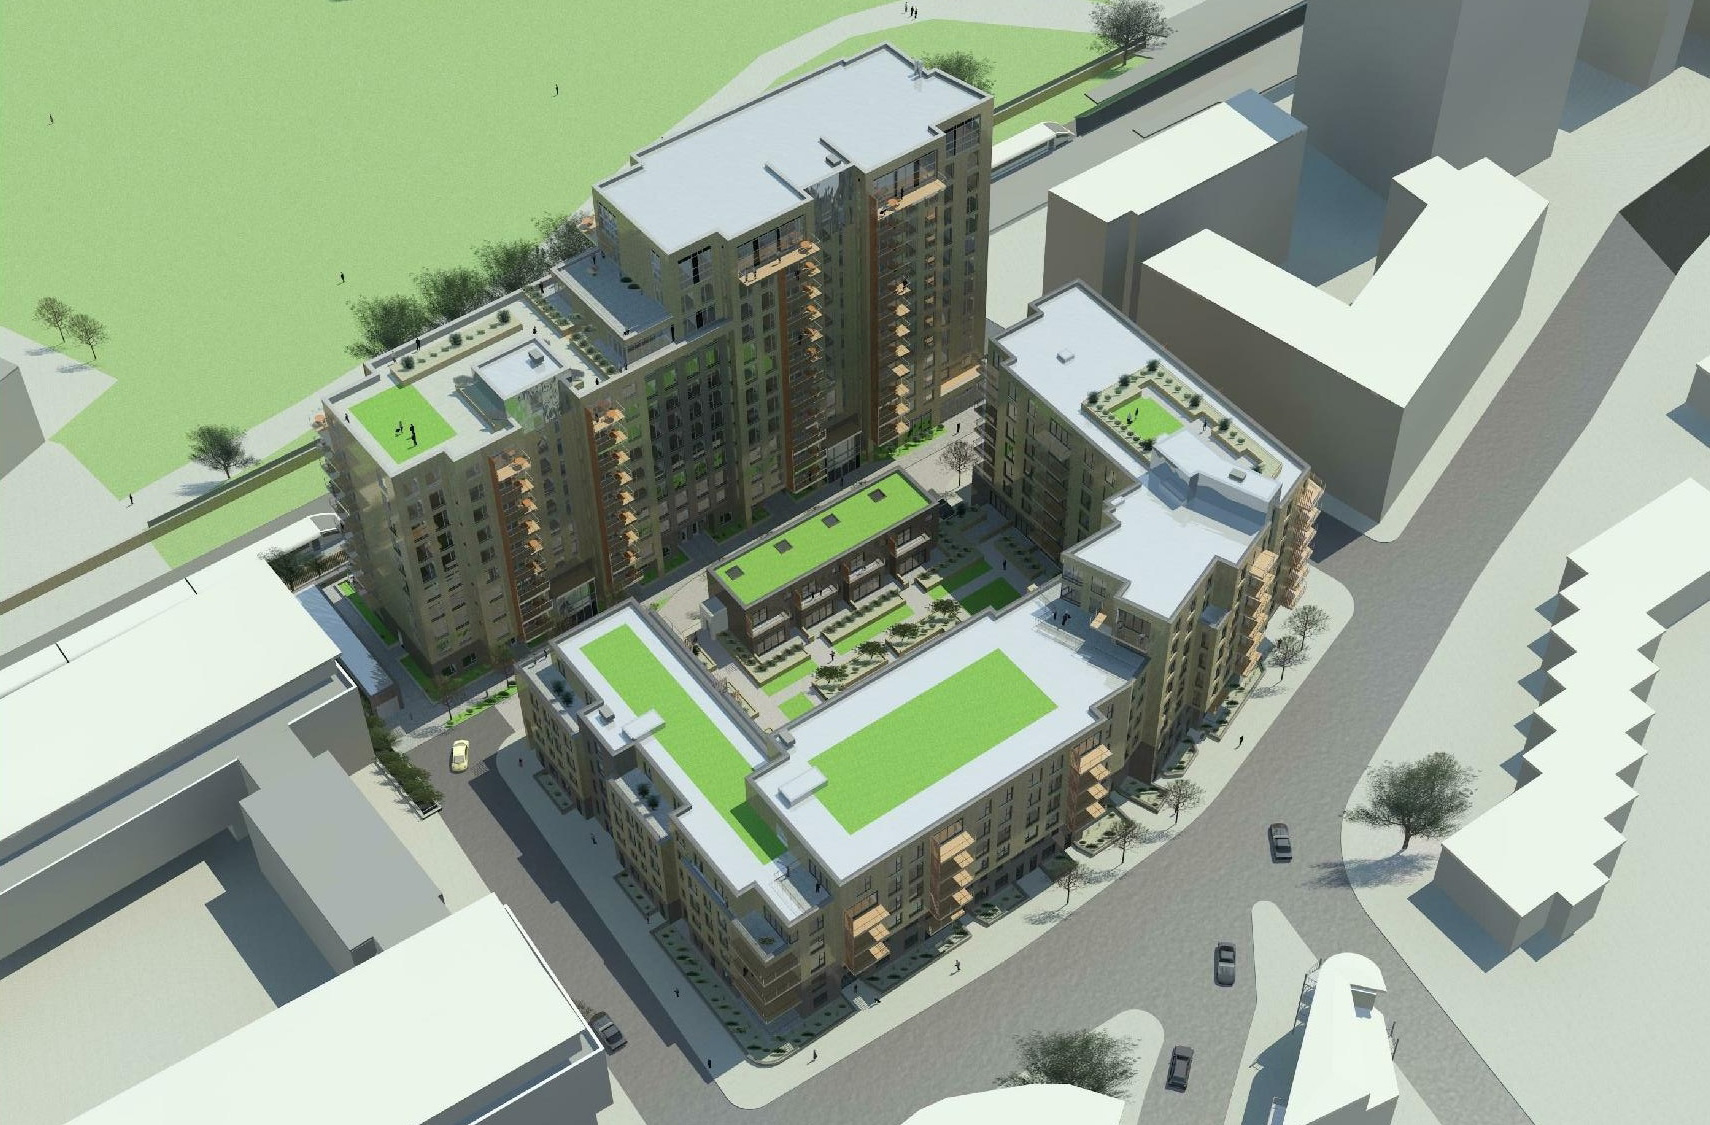 London Dockland apartment scheme submitted for Planning Approval